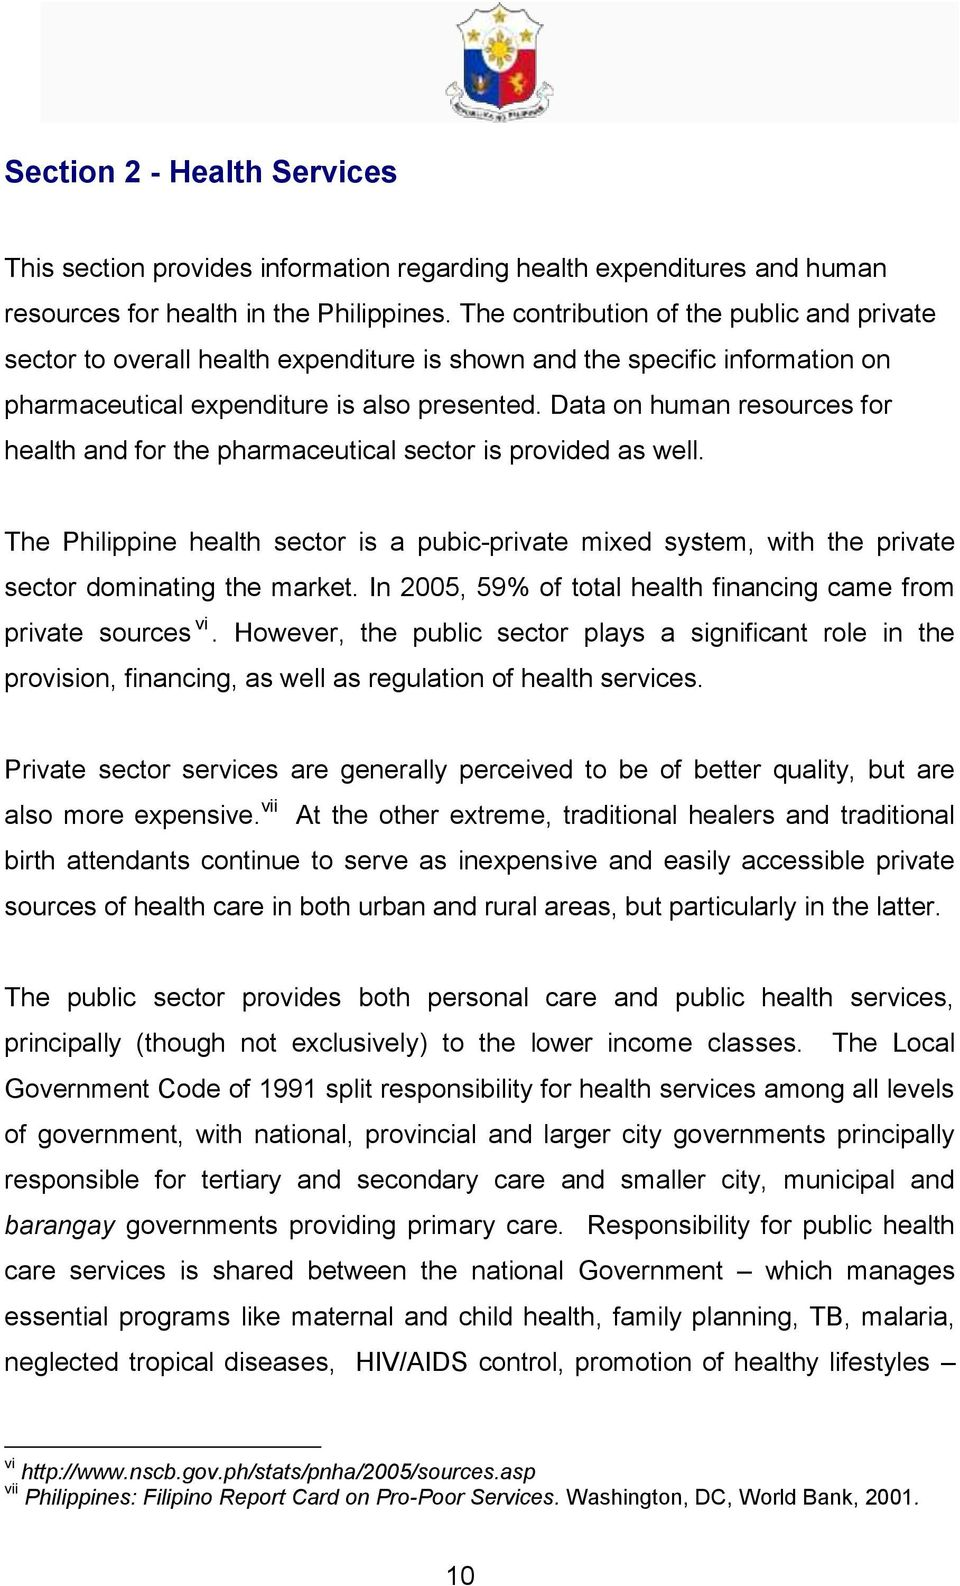 PHILIPPINES PHARMACEUTICAL COUNTRY PROFILE - PDF